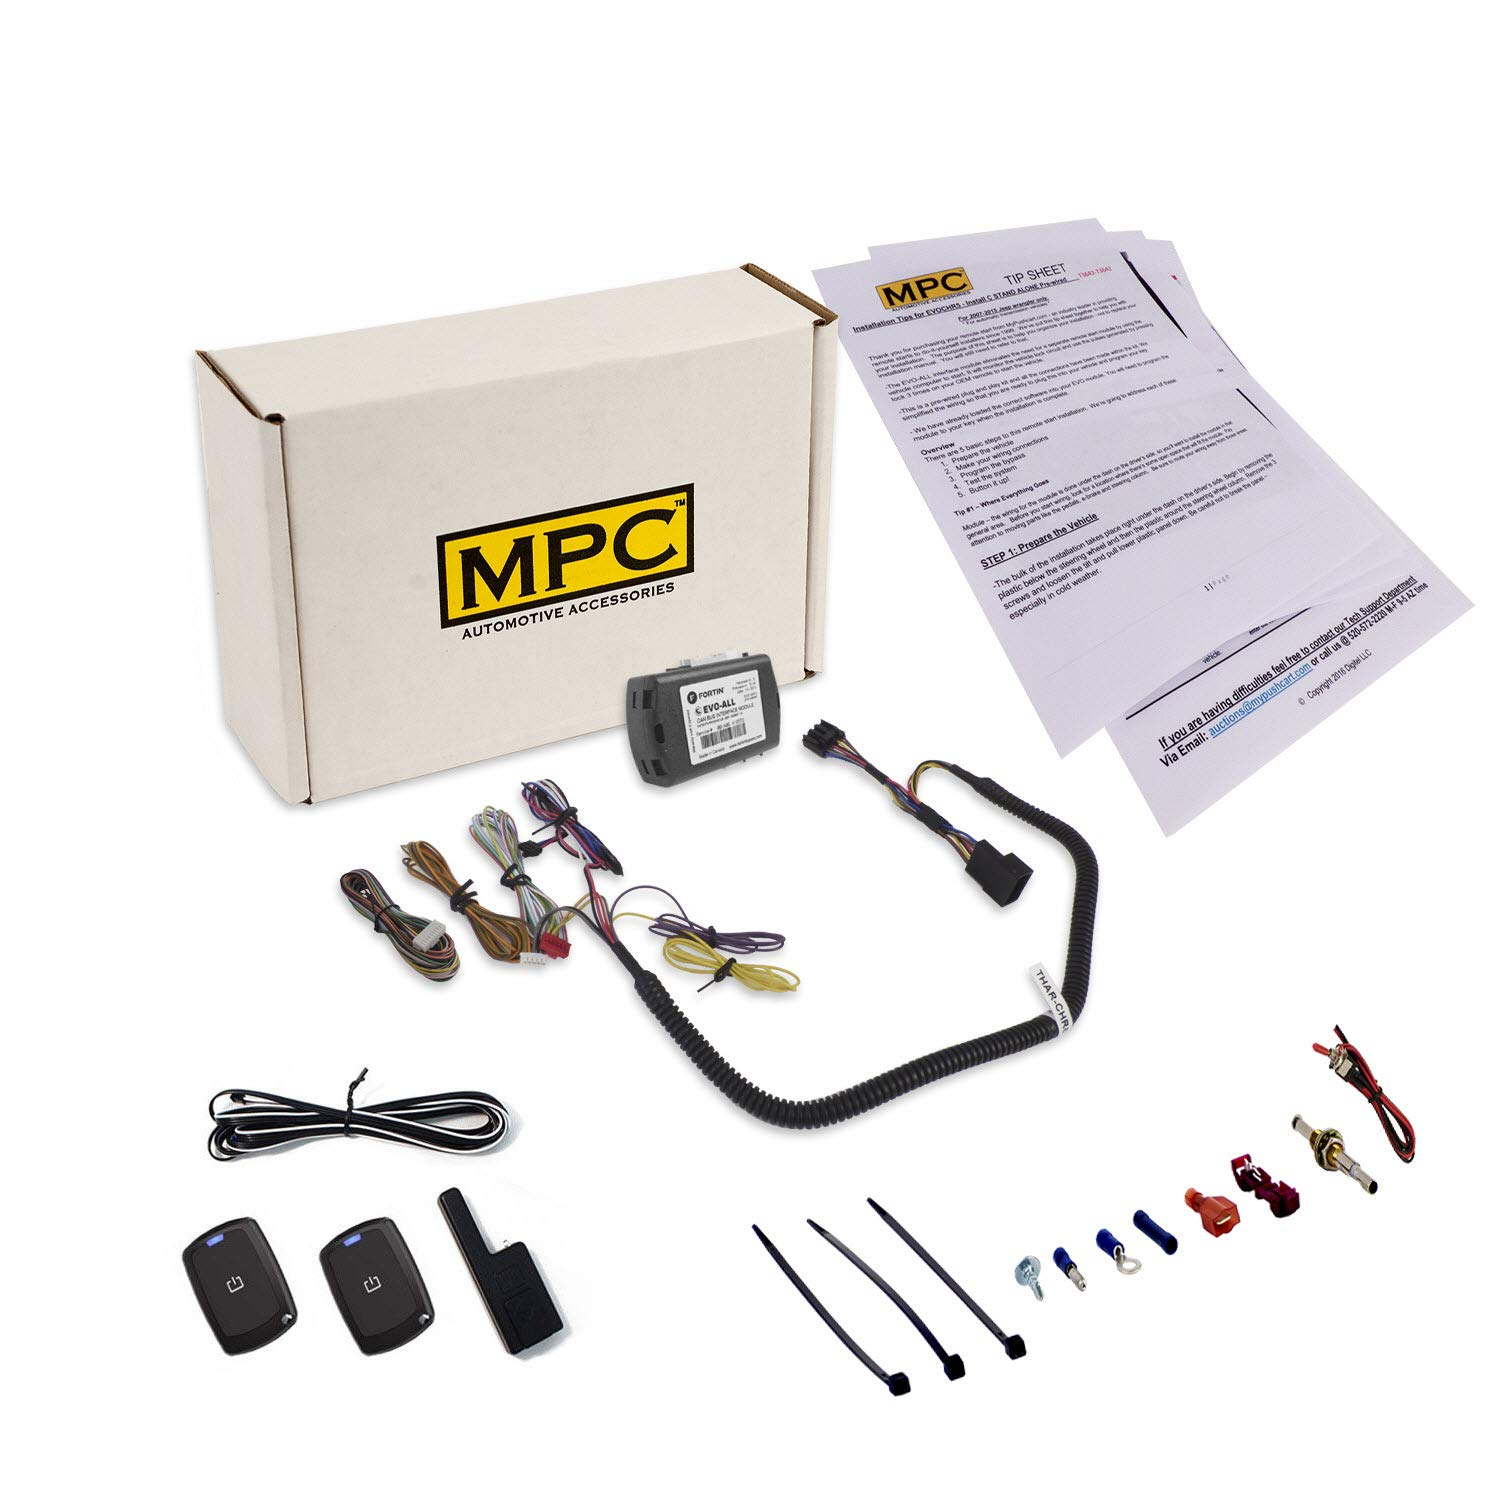 MPC Complete 1-Button Remote Start Kit for 2007-2018 Jeep Wrangler JK - T-Harness - Key-to-Start - Firmware Preloaded